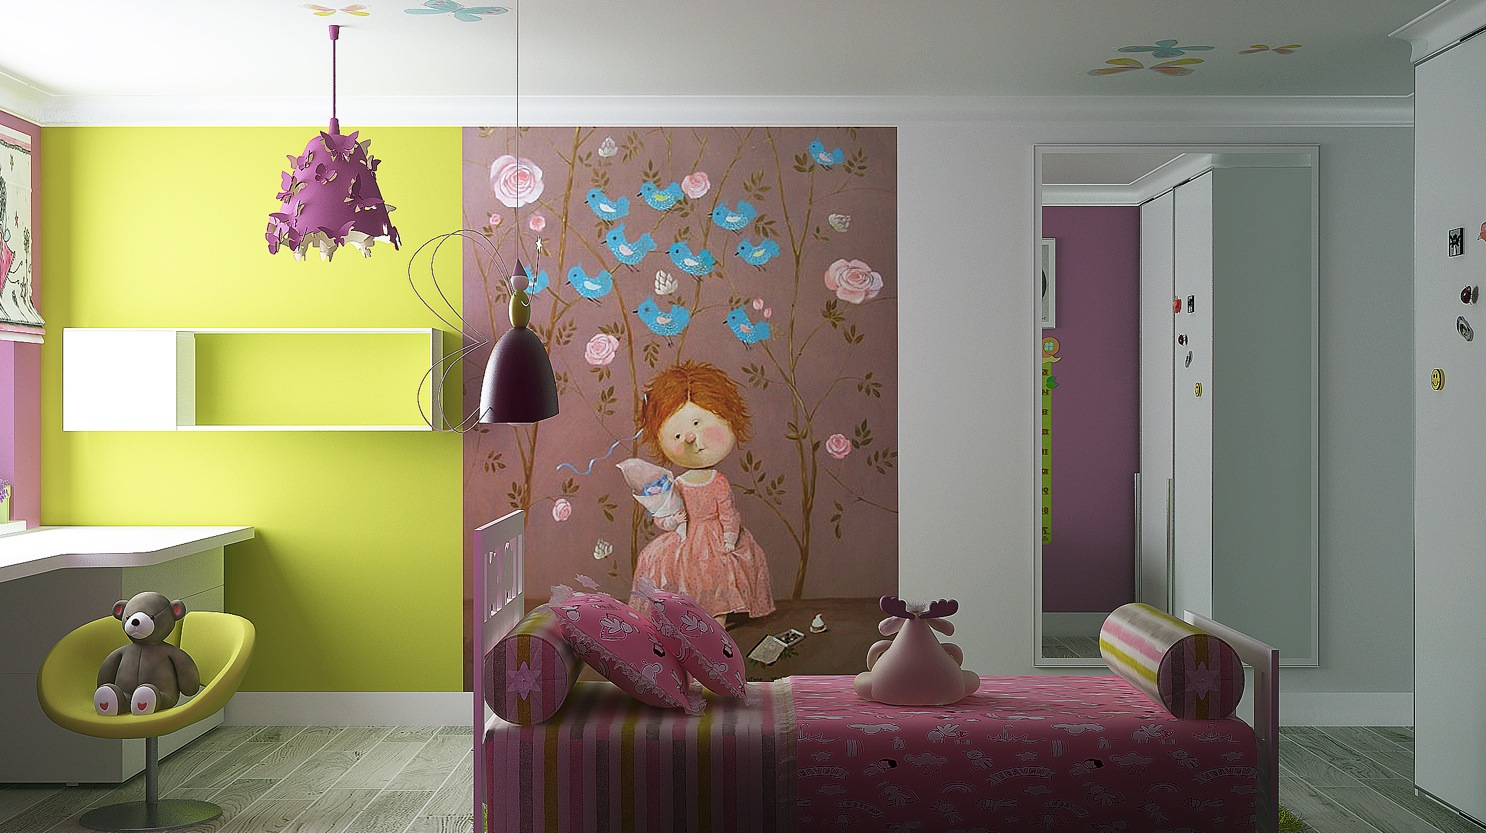 Surprising Wall Mural to Decorate Bedroom for Girls with Unique Pendant Lamps